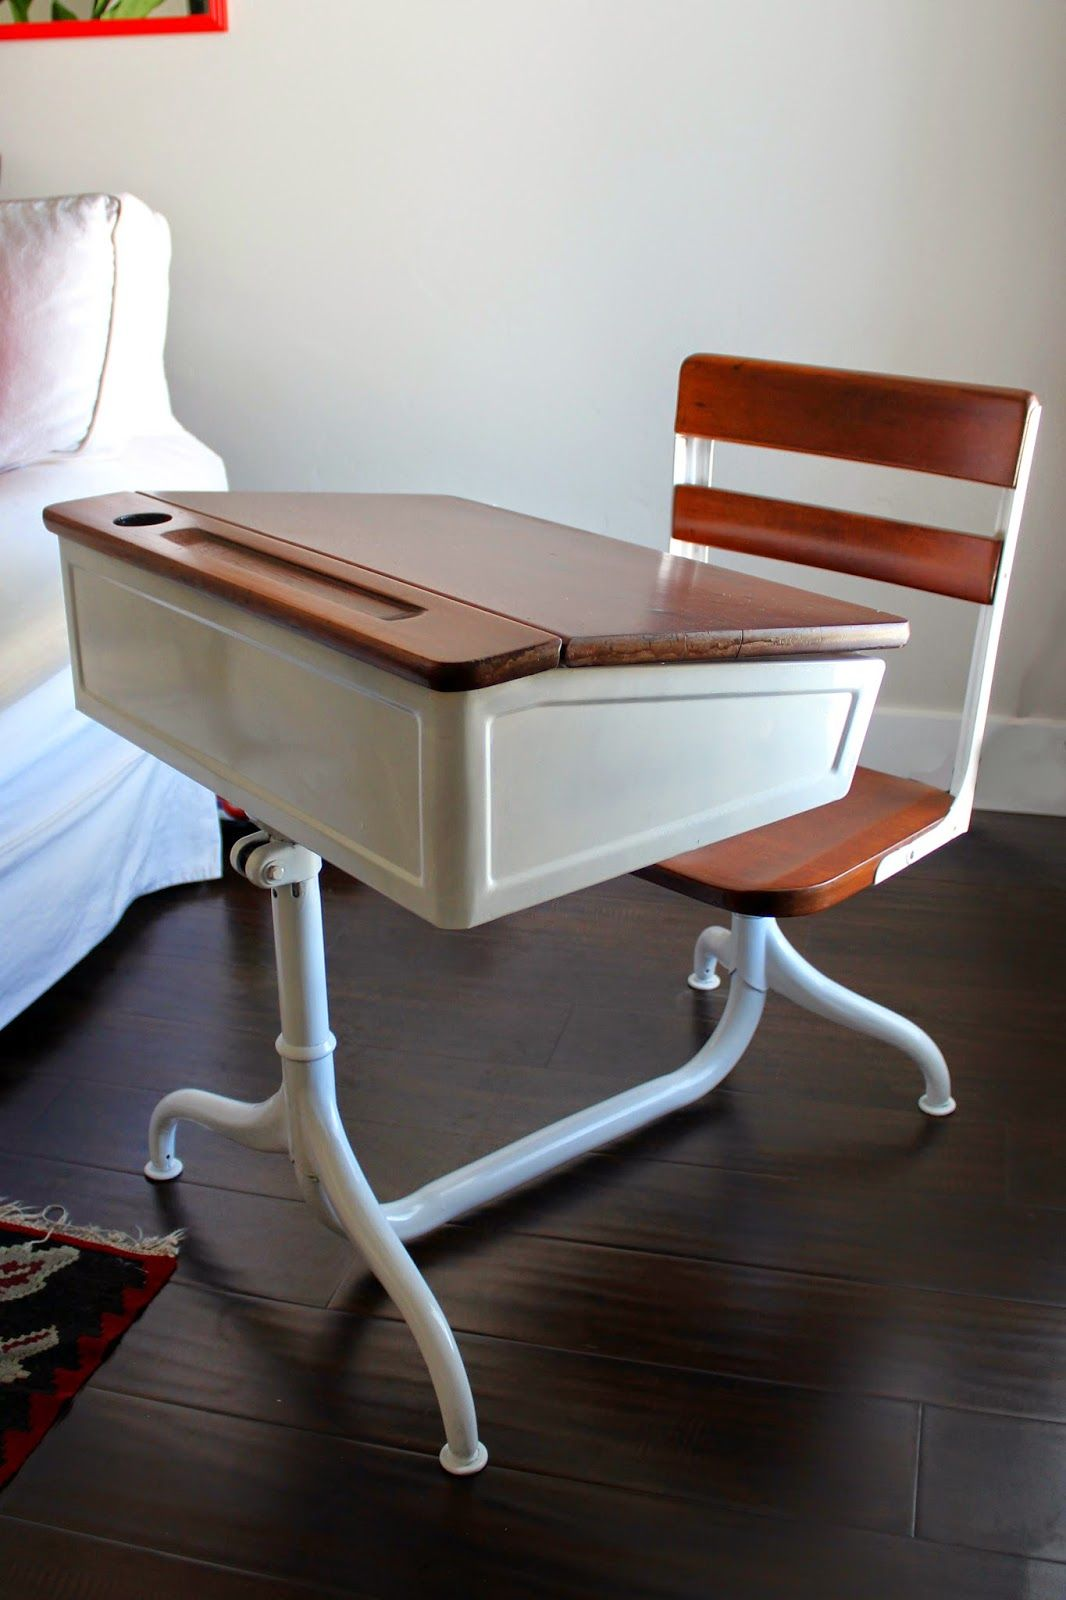 painting ideas for our vintage school desk from olp desk vintage rh pinterest com